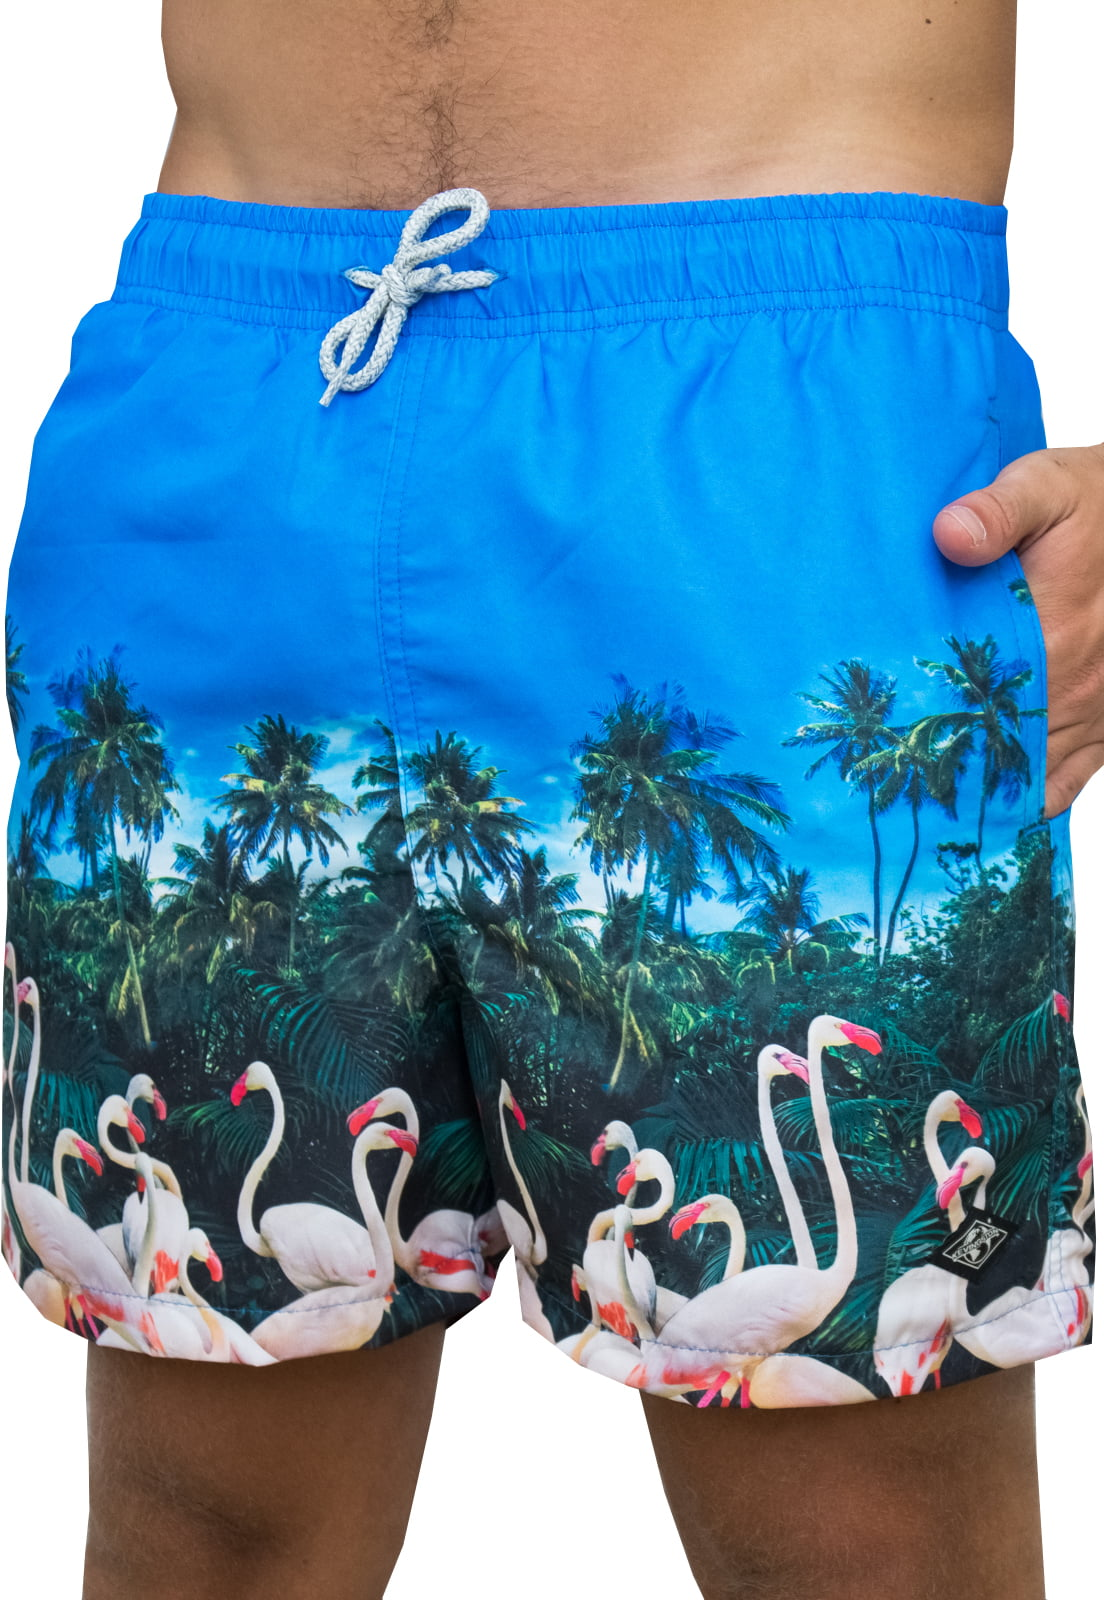 SHORT DE BANHO WIND - JUNGLE FLAMINGOS